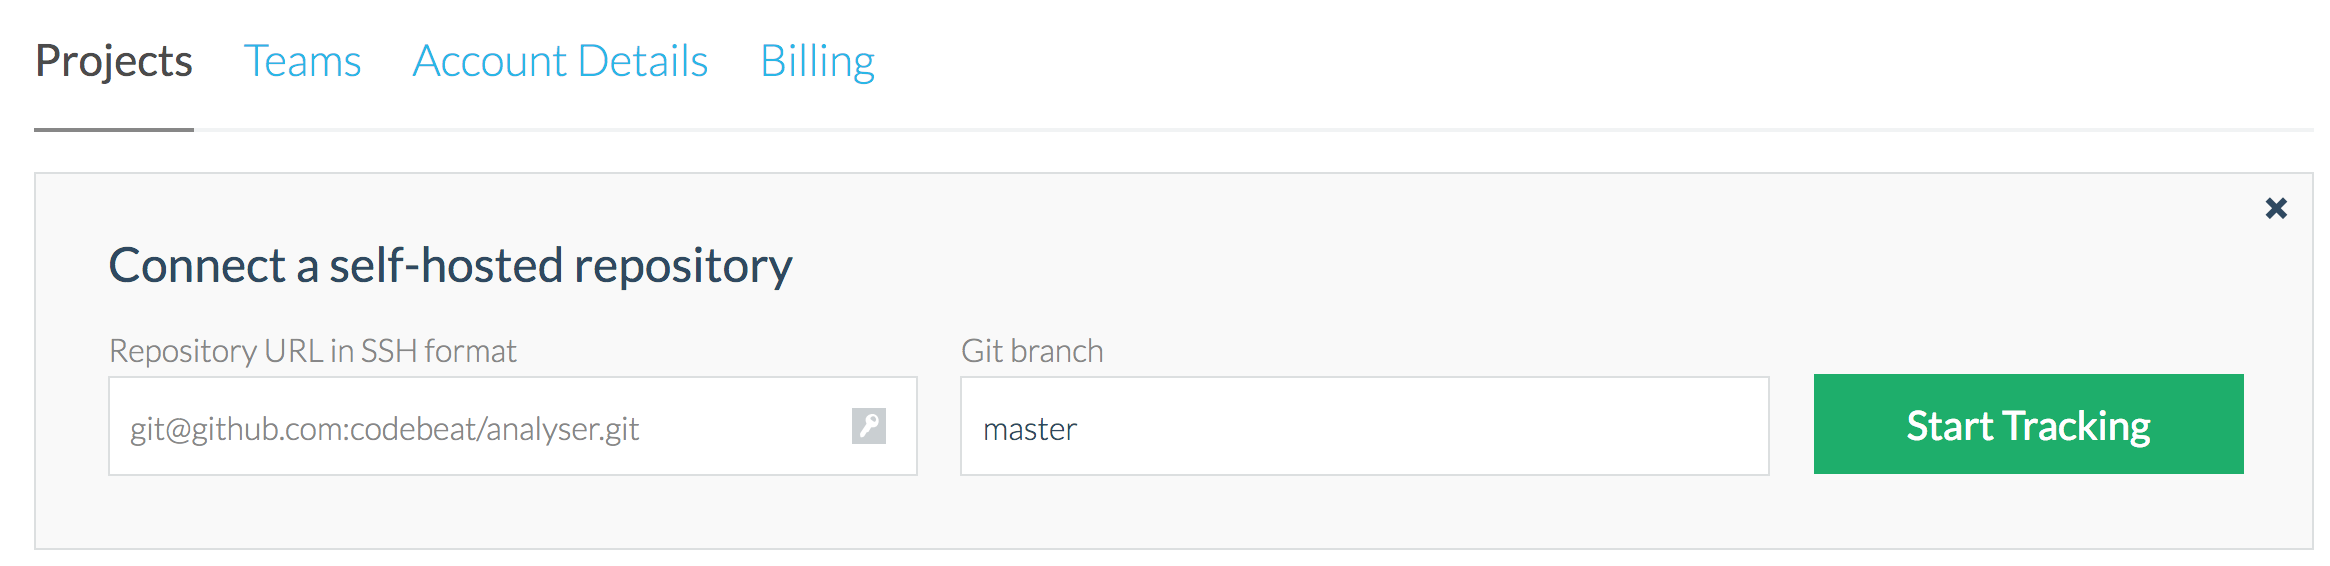 Learn How To Resolve Merge Conflicts On Github And Using The Command Line